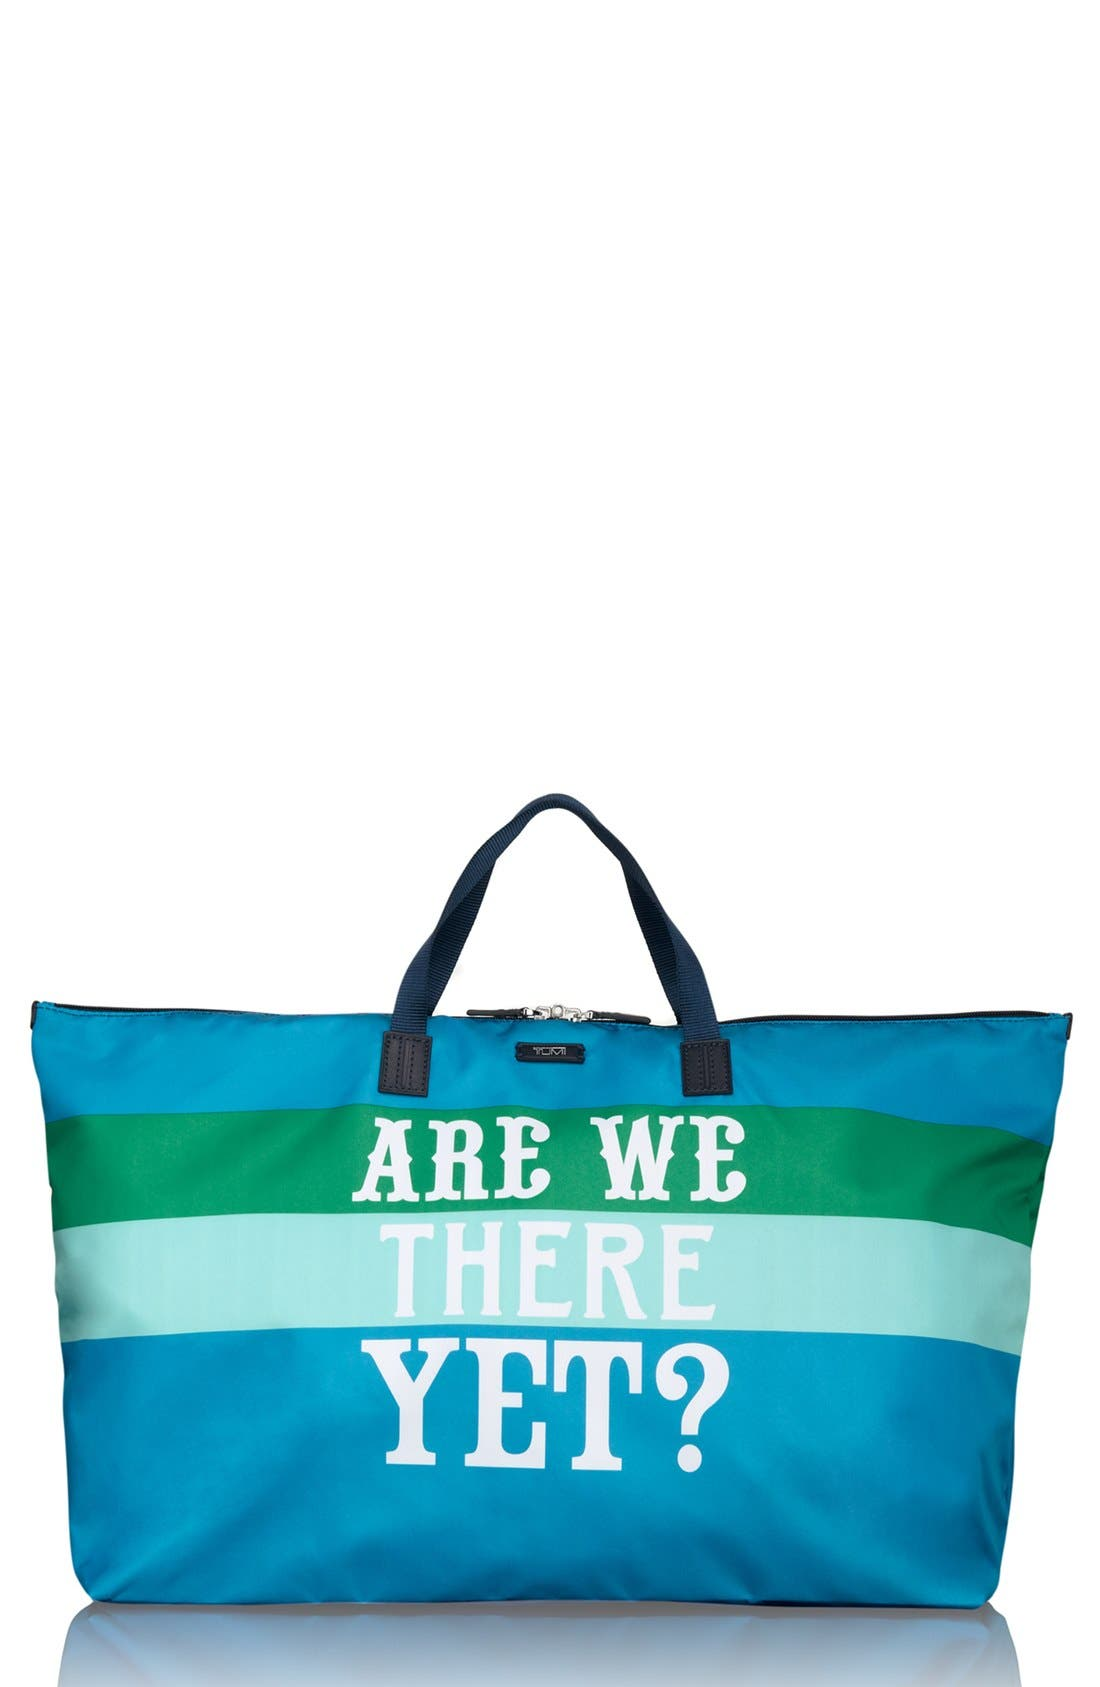 'Are We There Yet?' Nylon Tote,                             Main thumbnail 1, color,                             450